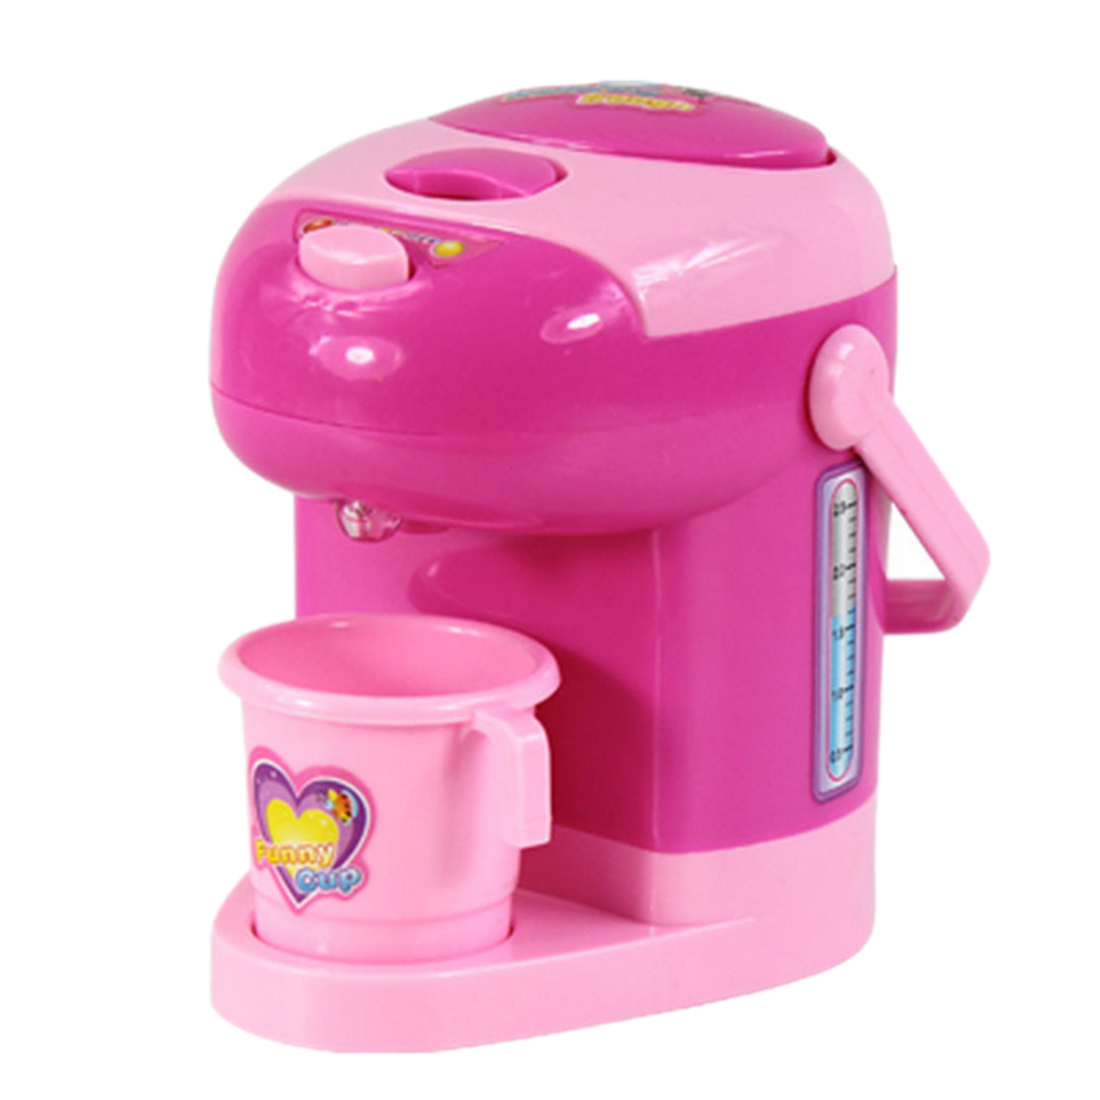 Uncategorized Kids Kitchen Appliances popular toy appliances buy cheap lots from china educational electric water dispenser children pretend play baby kids home color